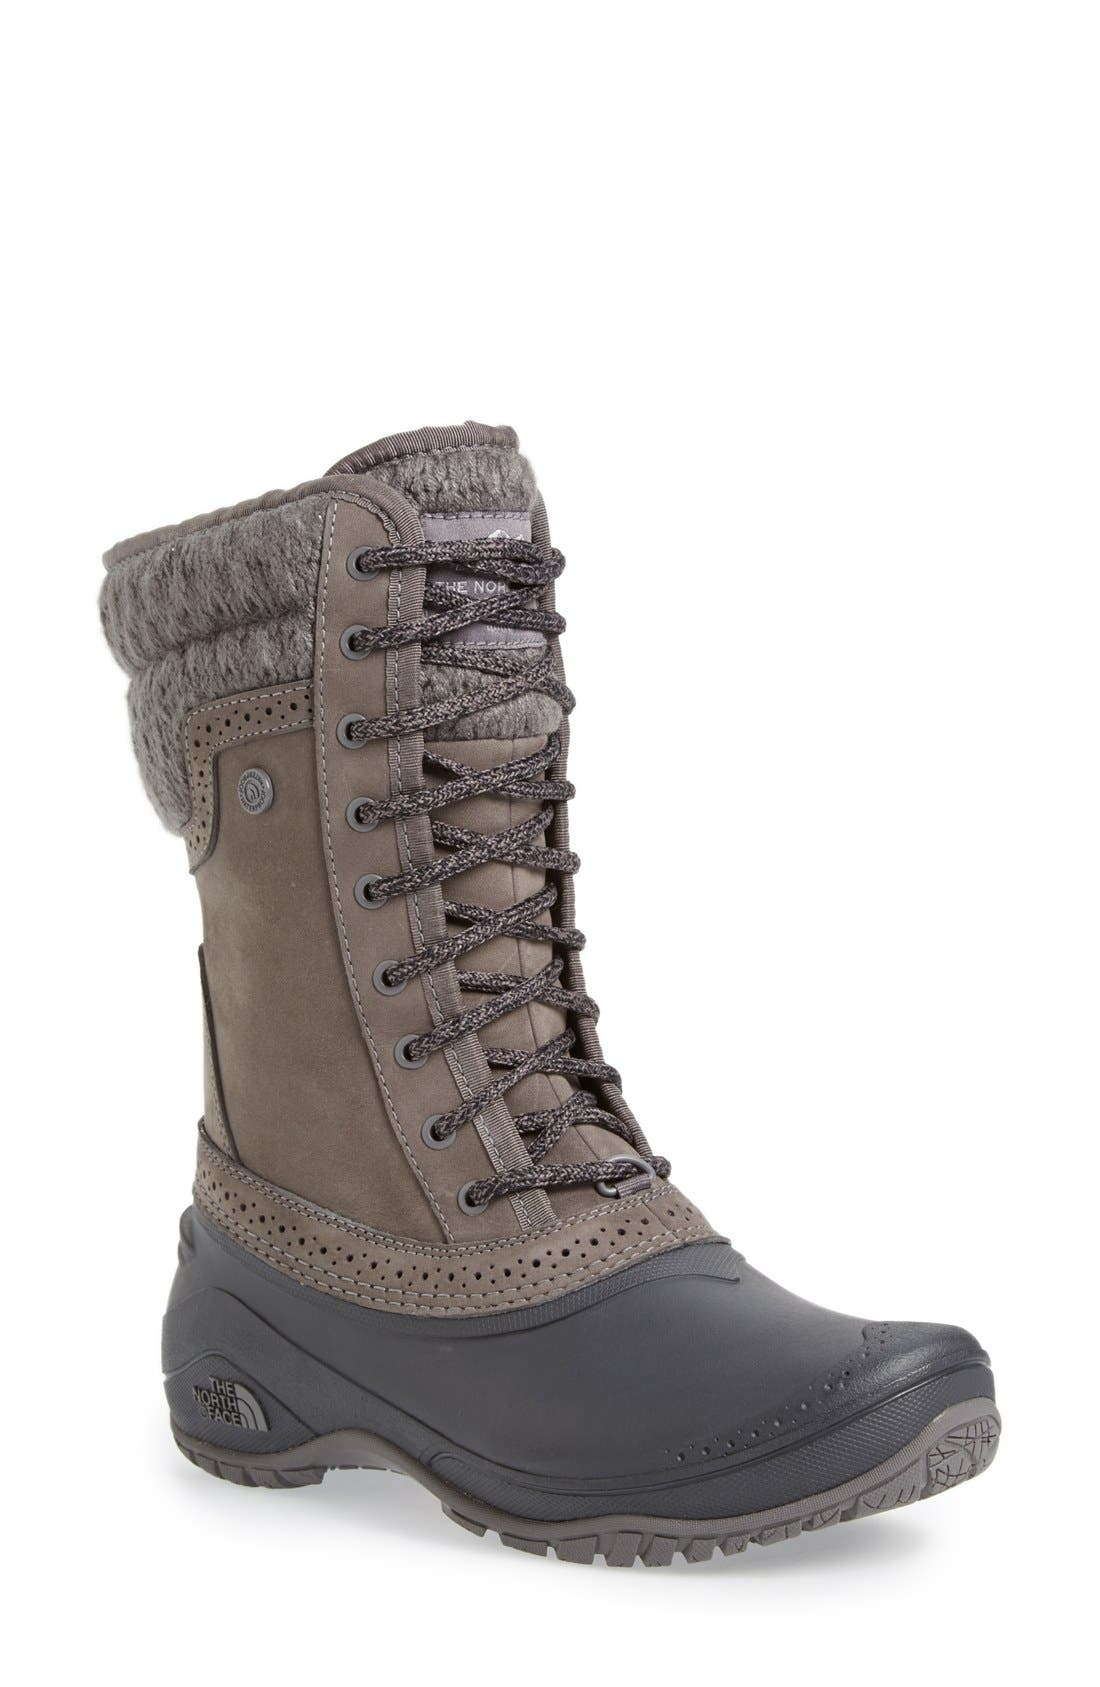 Alternate Image 1 Selected - The North Face Shellista Waterproof Insulated Snow Boot (Women)